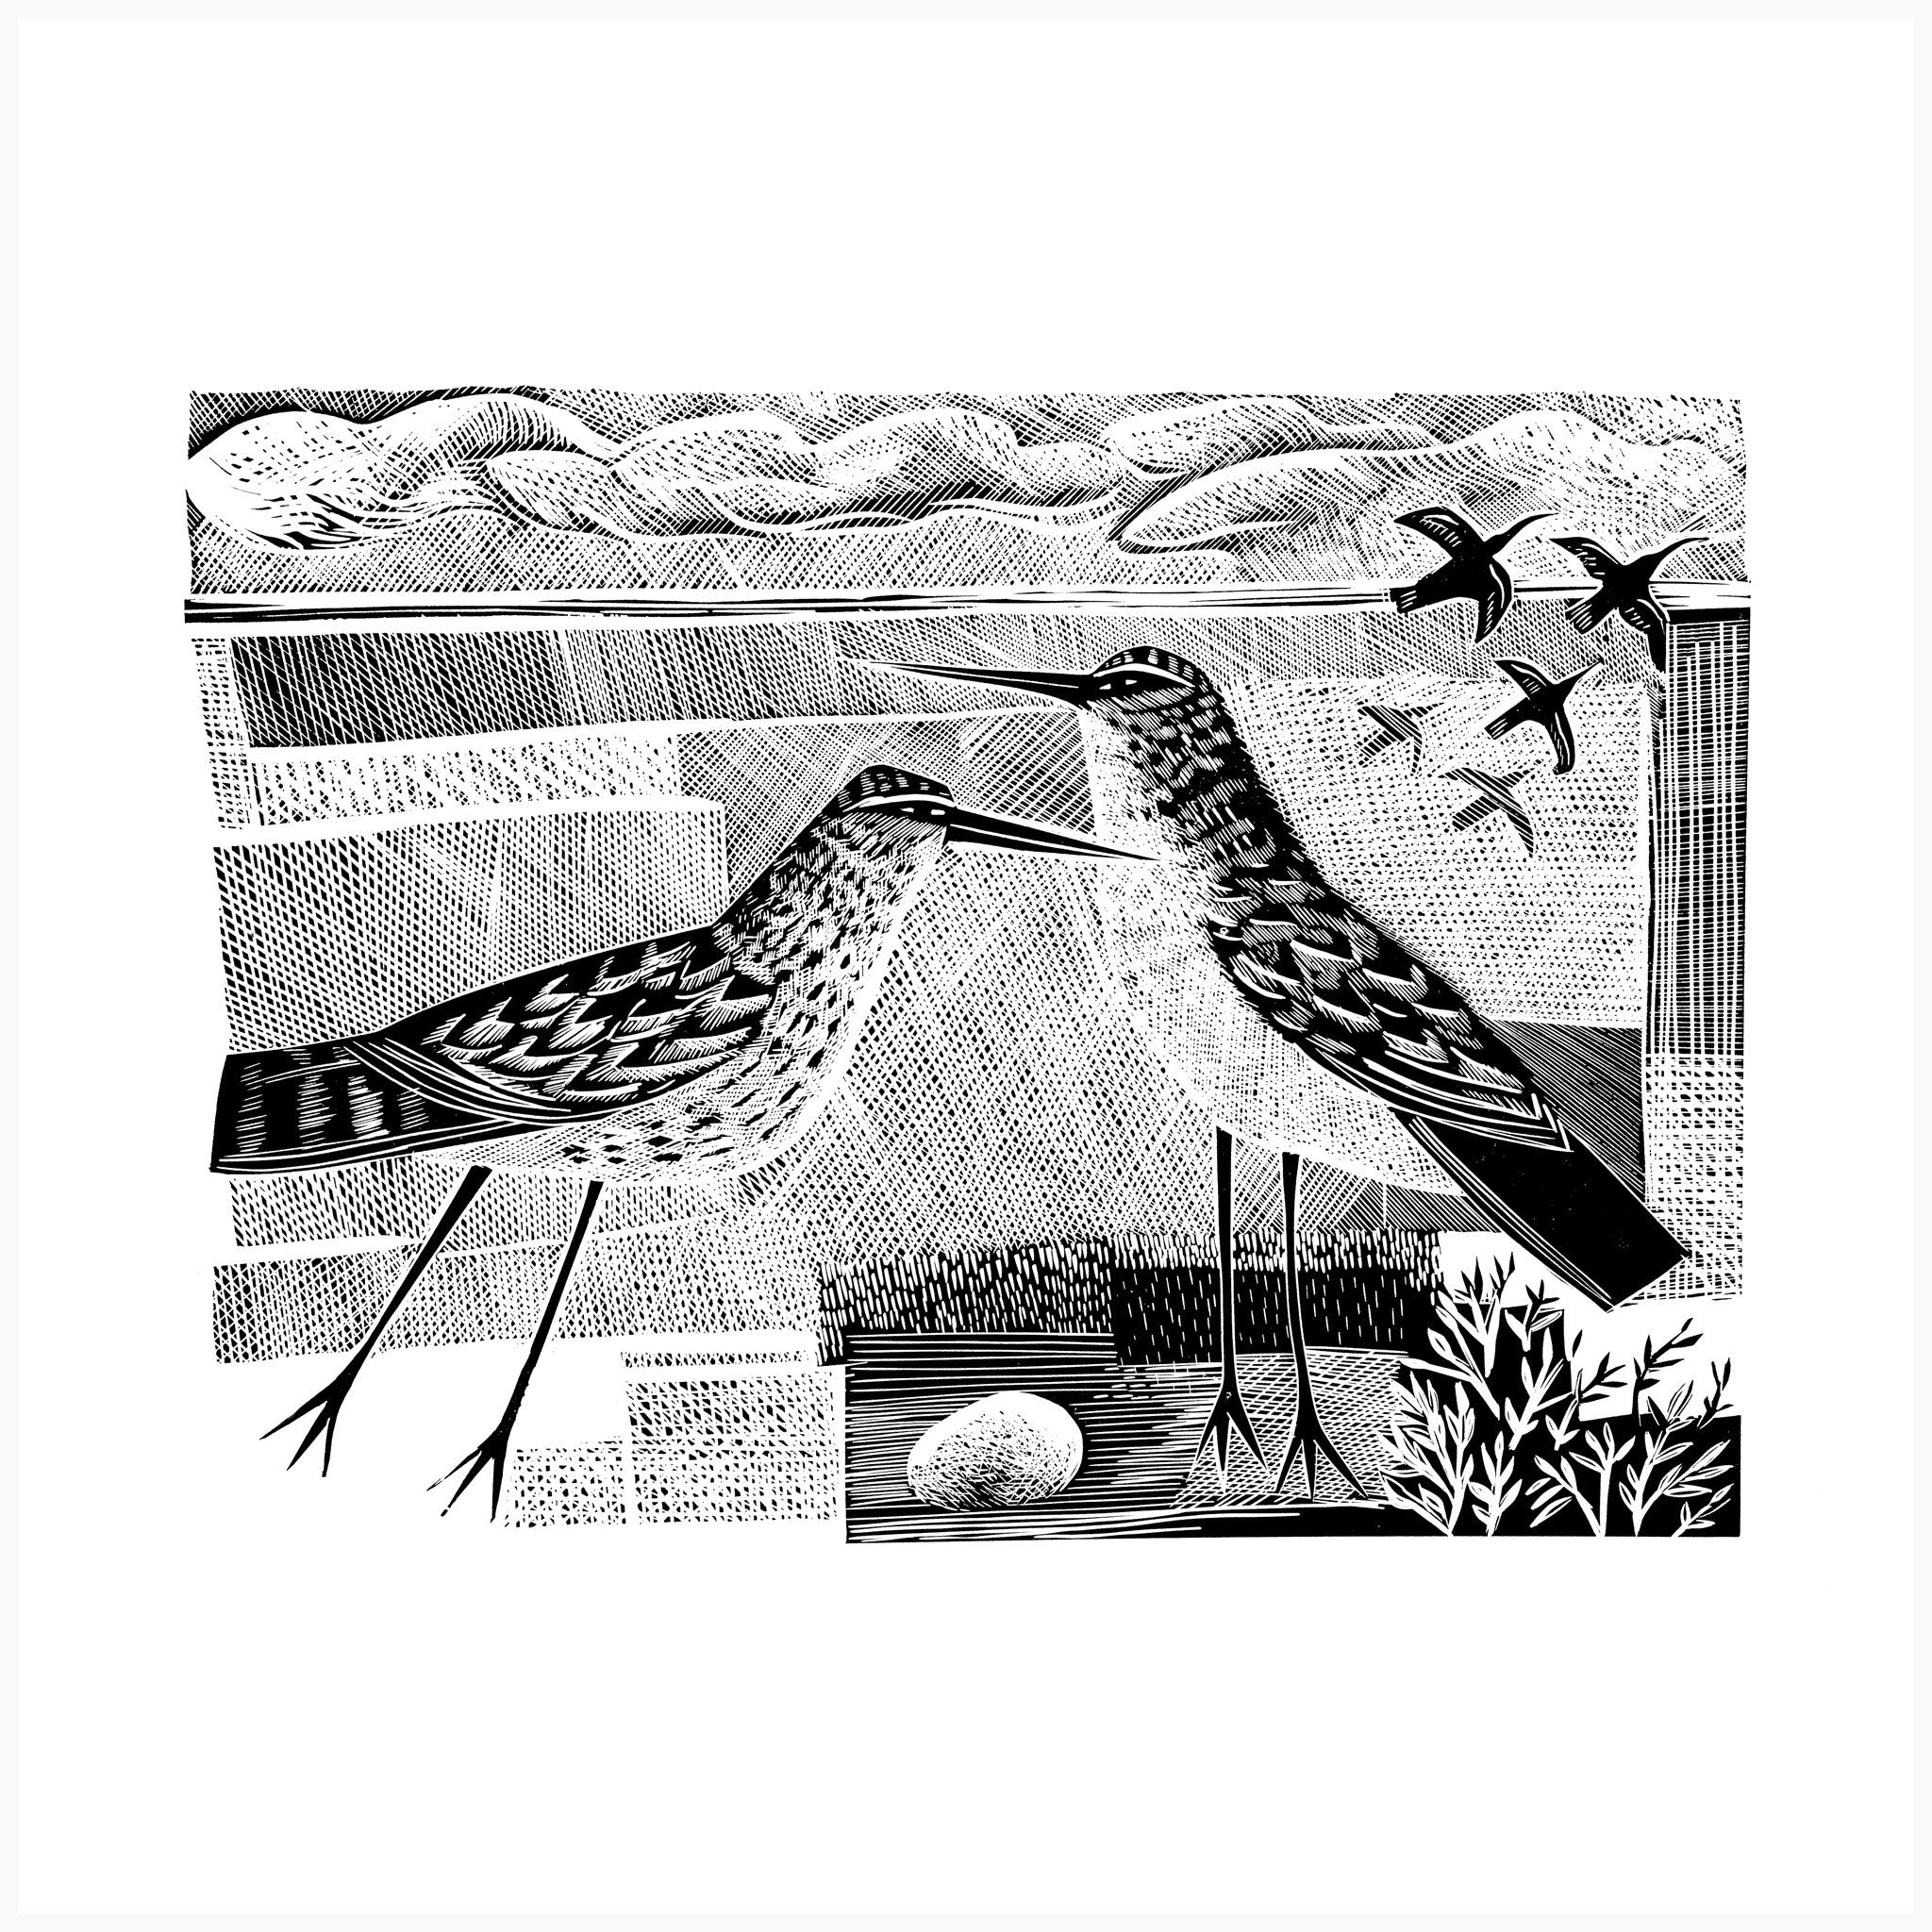 Norfolk Bird Black and White Edition, Linocut Print by Angela Harding